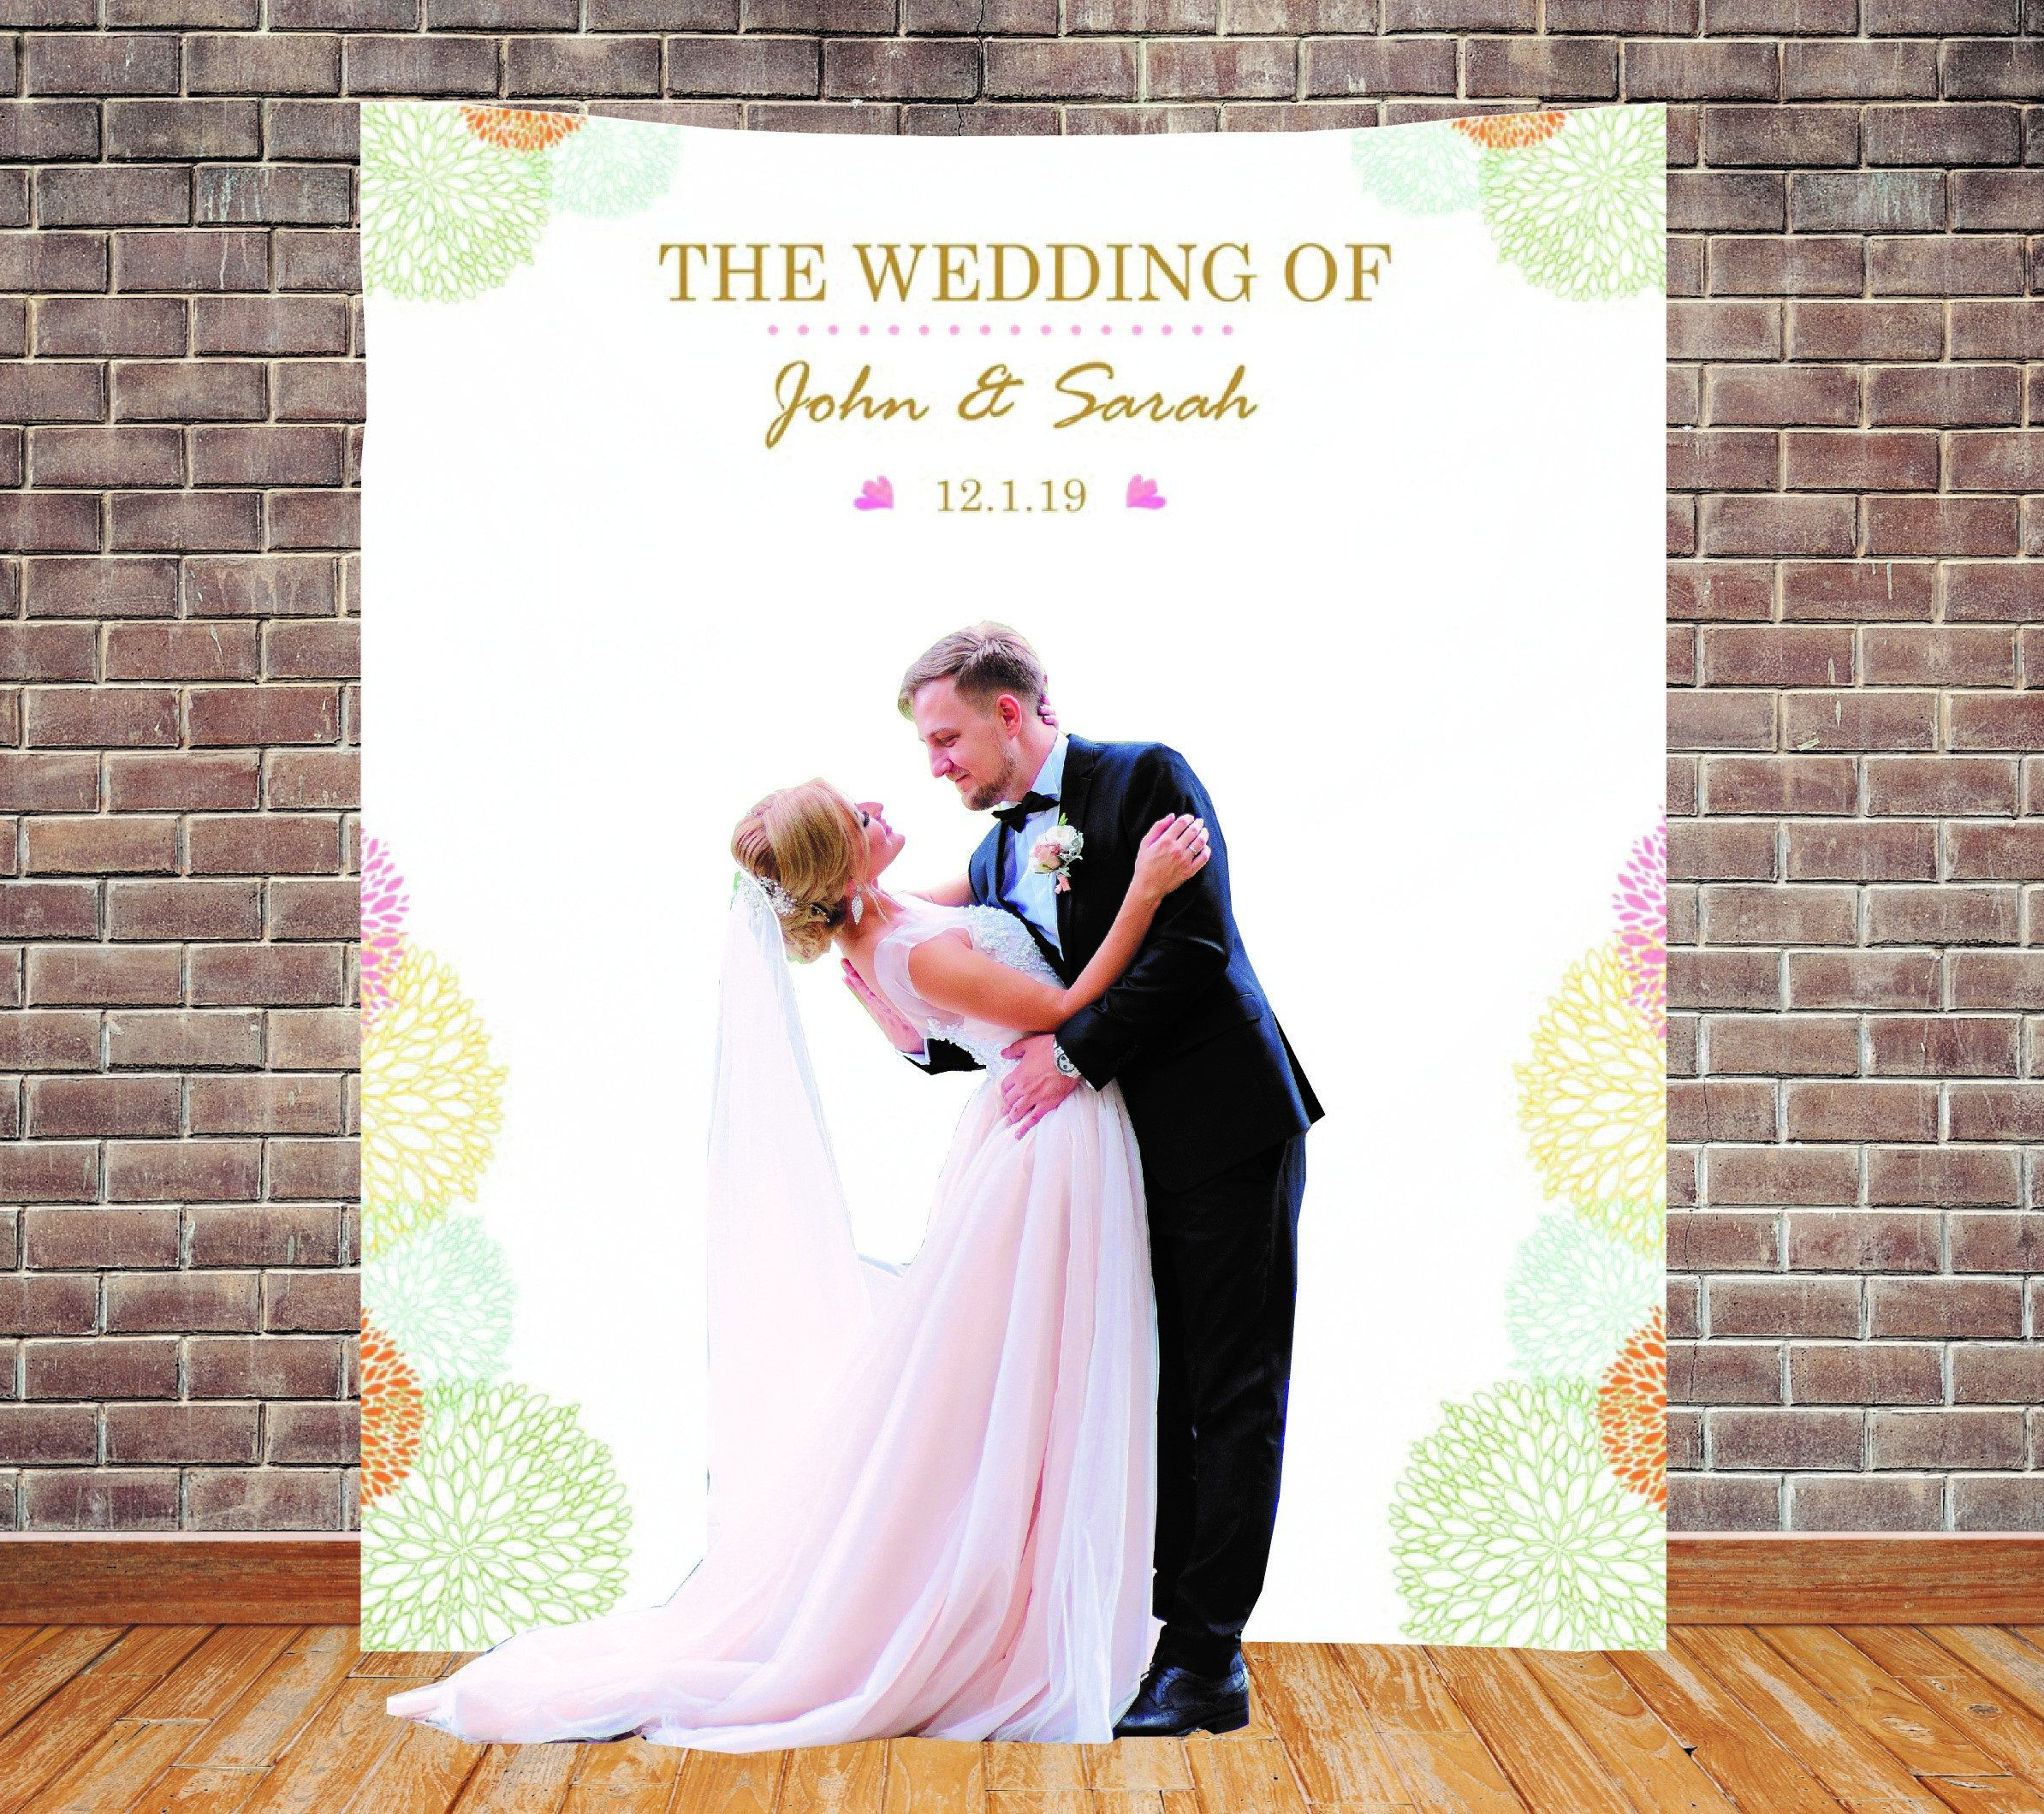 Custom Backdrop Decorations Photo Booth Backdrops Customzied Bridal Shower Wedding Banner Personalized Reception Sign Pastel Color Simple Bridal Shower Decorations Simple Bridal Shower Wedding Banner